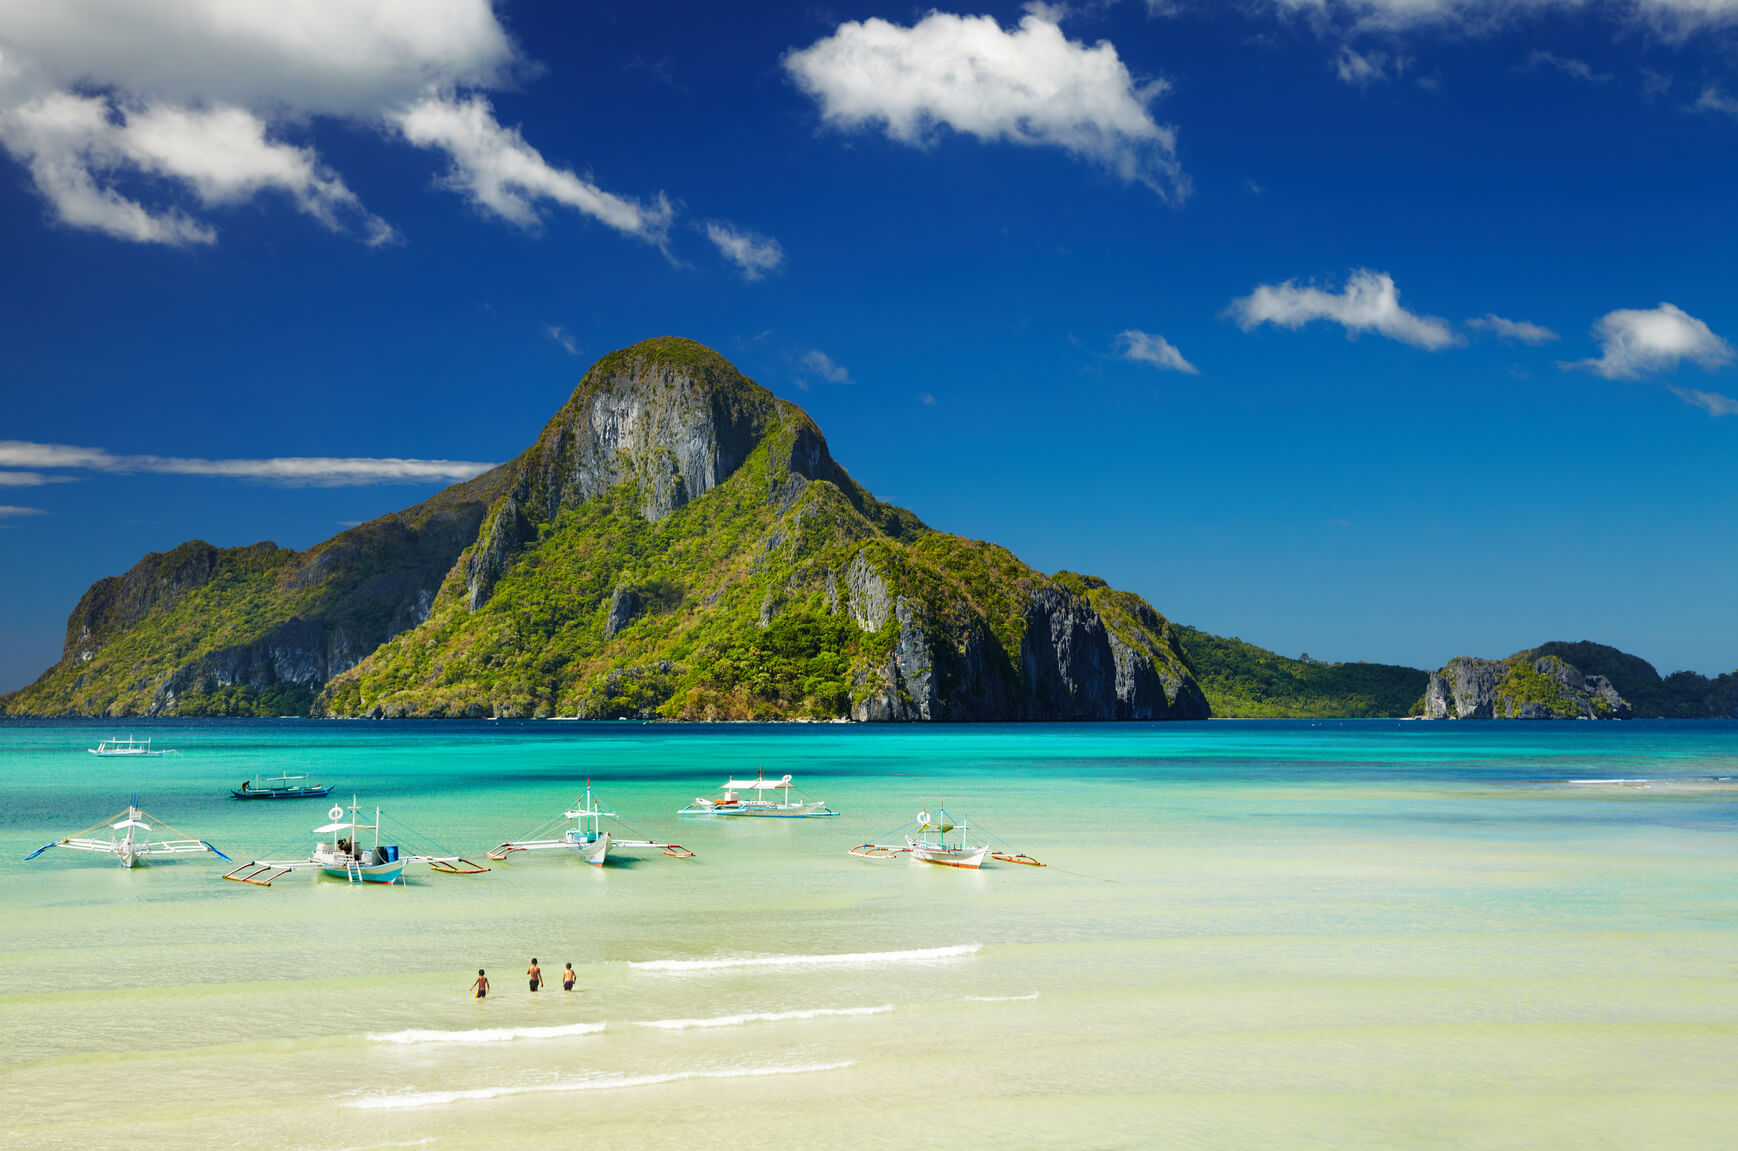 New York to Manila, Philippines for only $566 roundtrip (Jan-May dates)